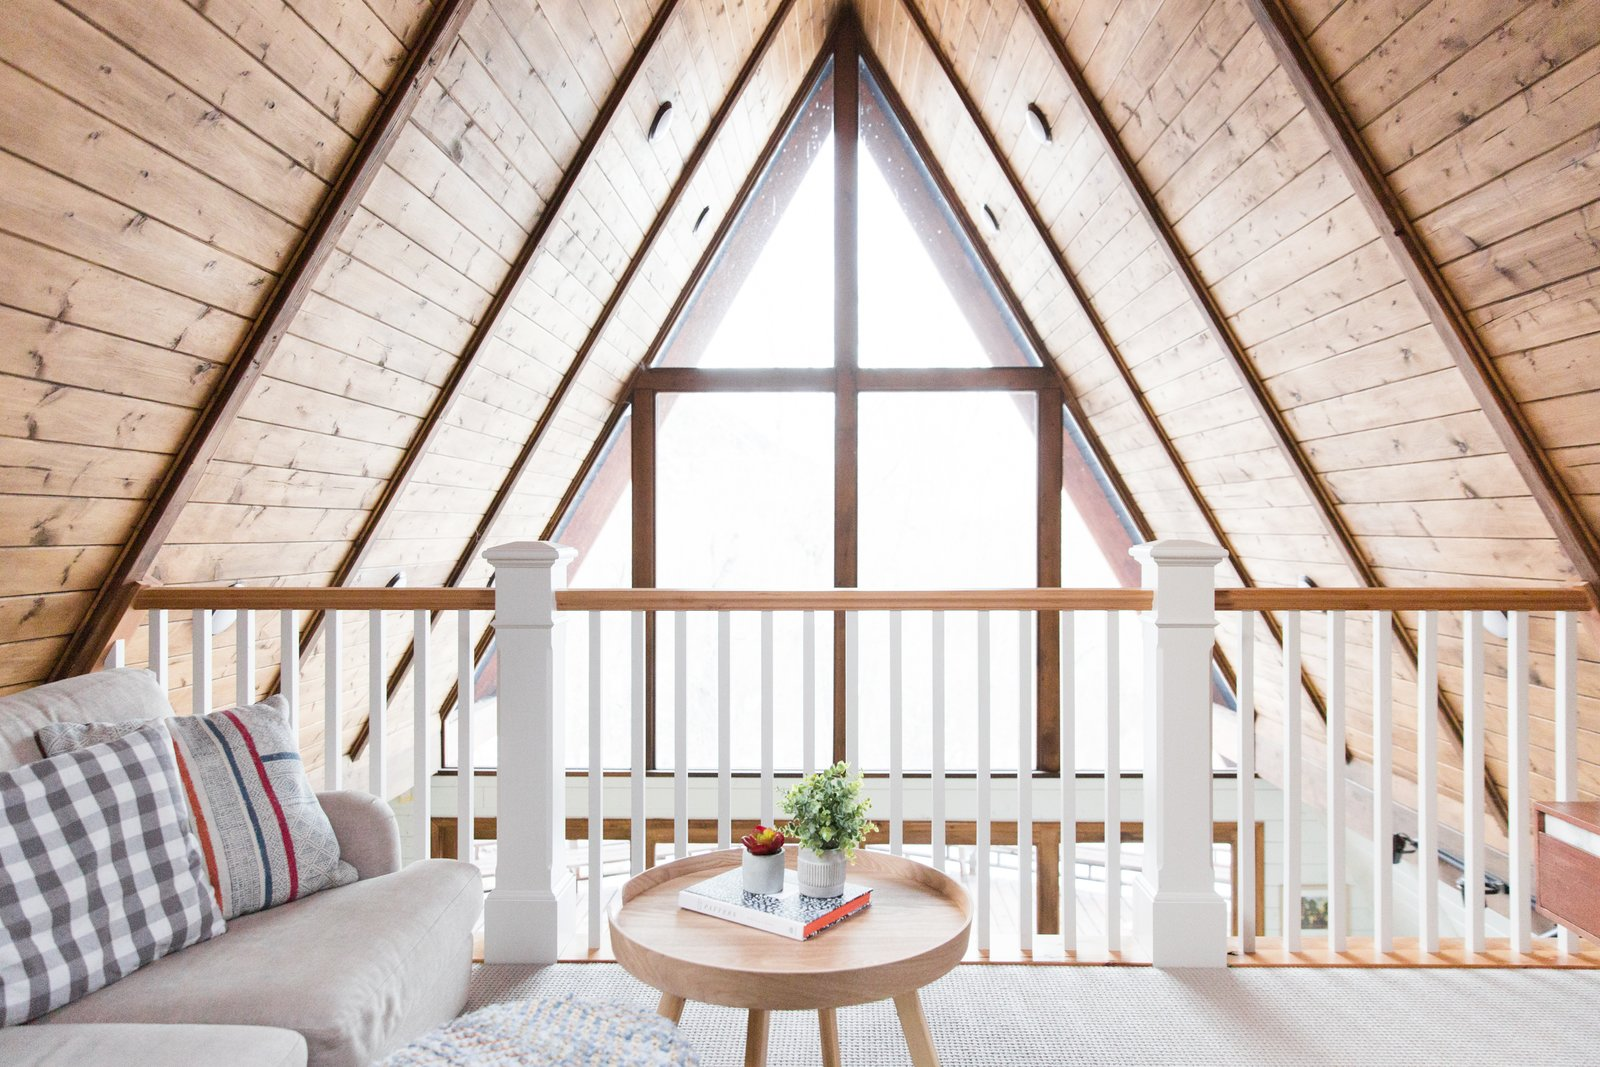 Living Room, Coffee Tables, Carpet Floor, and Sofa Light streams through the full-glass frontage to brighten the lofted lounge area.  Photo 13 of 14 in Before & After: An A-Frame Cabin Boasts Serious Scandinavian Vibes